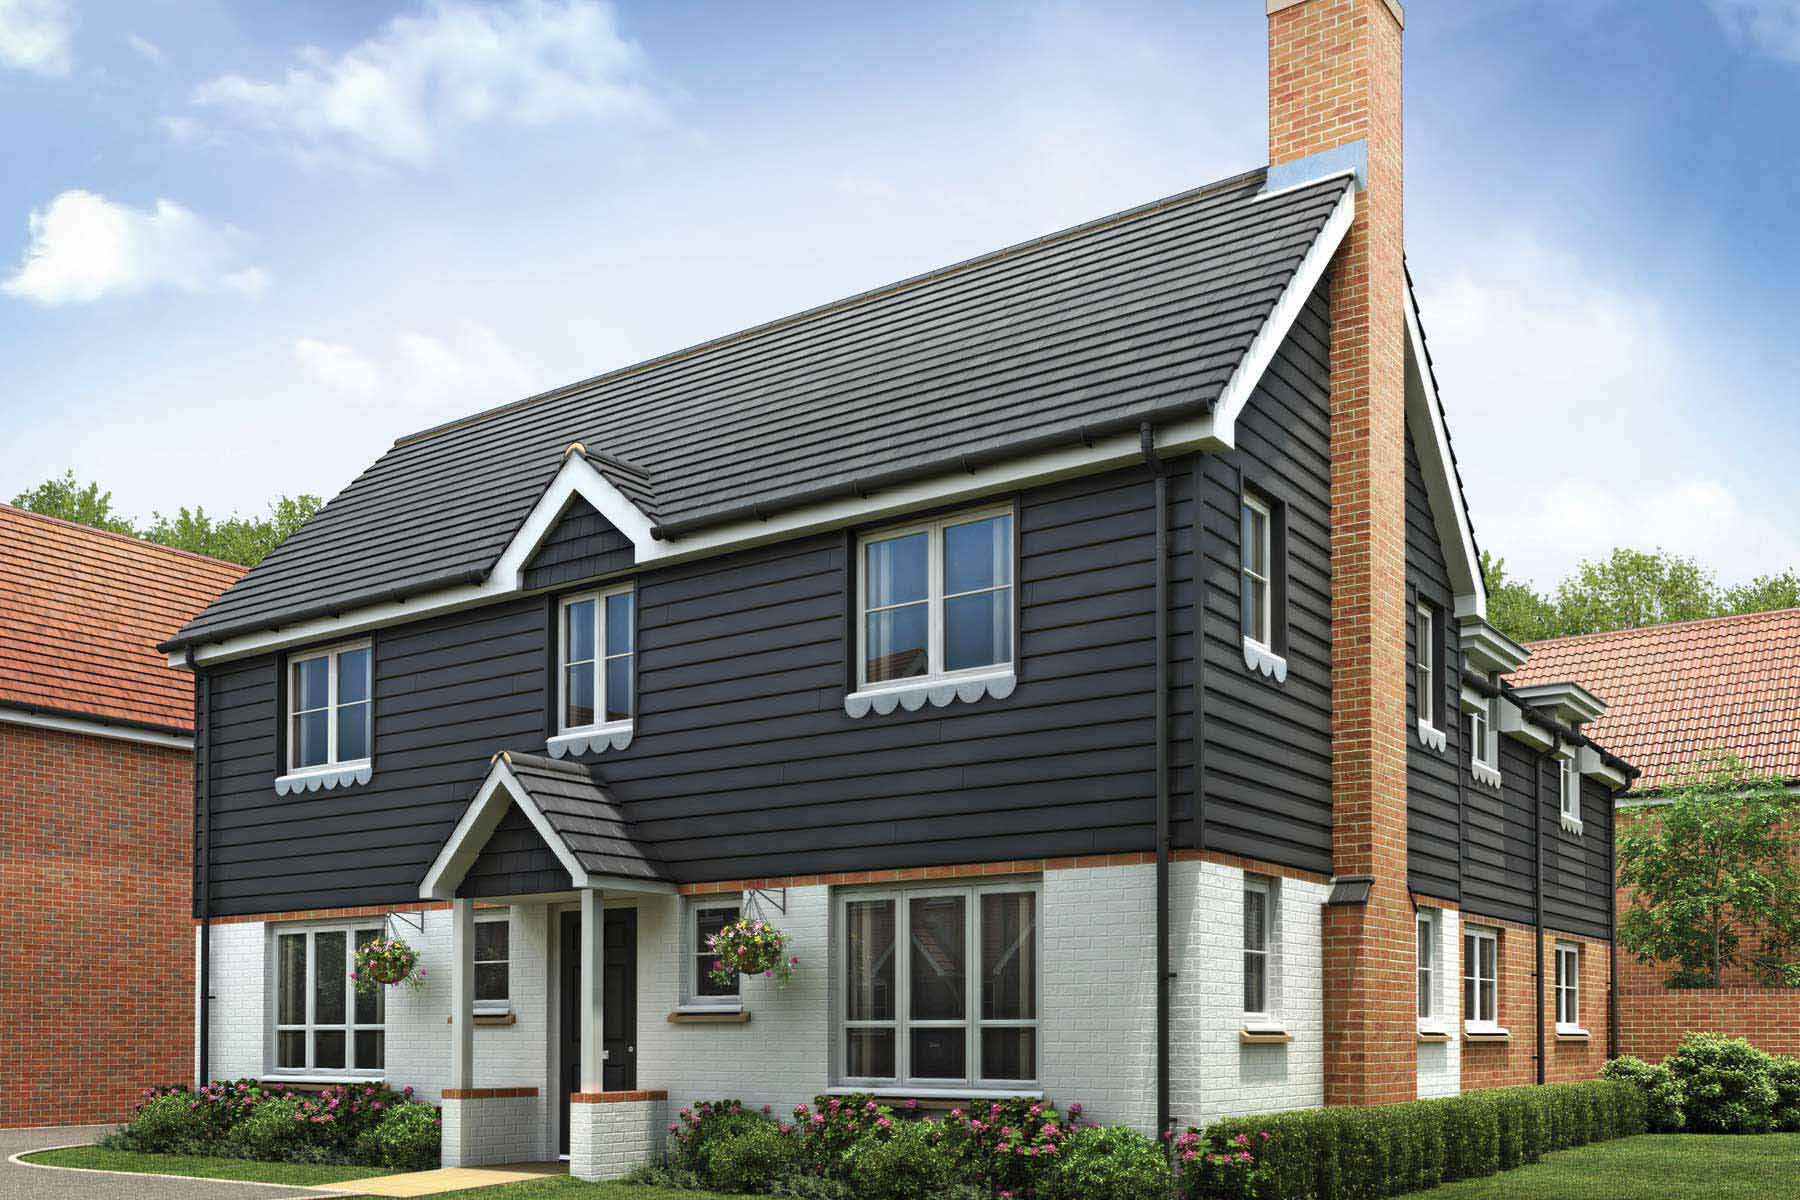 The langdale four bedroom home Home furniture and more in langley park